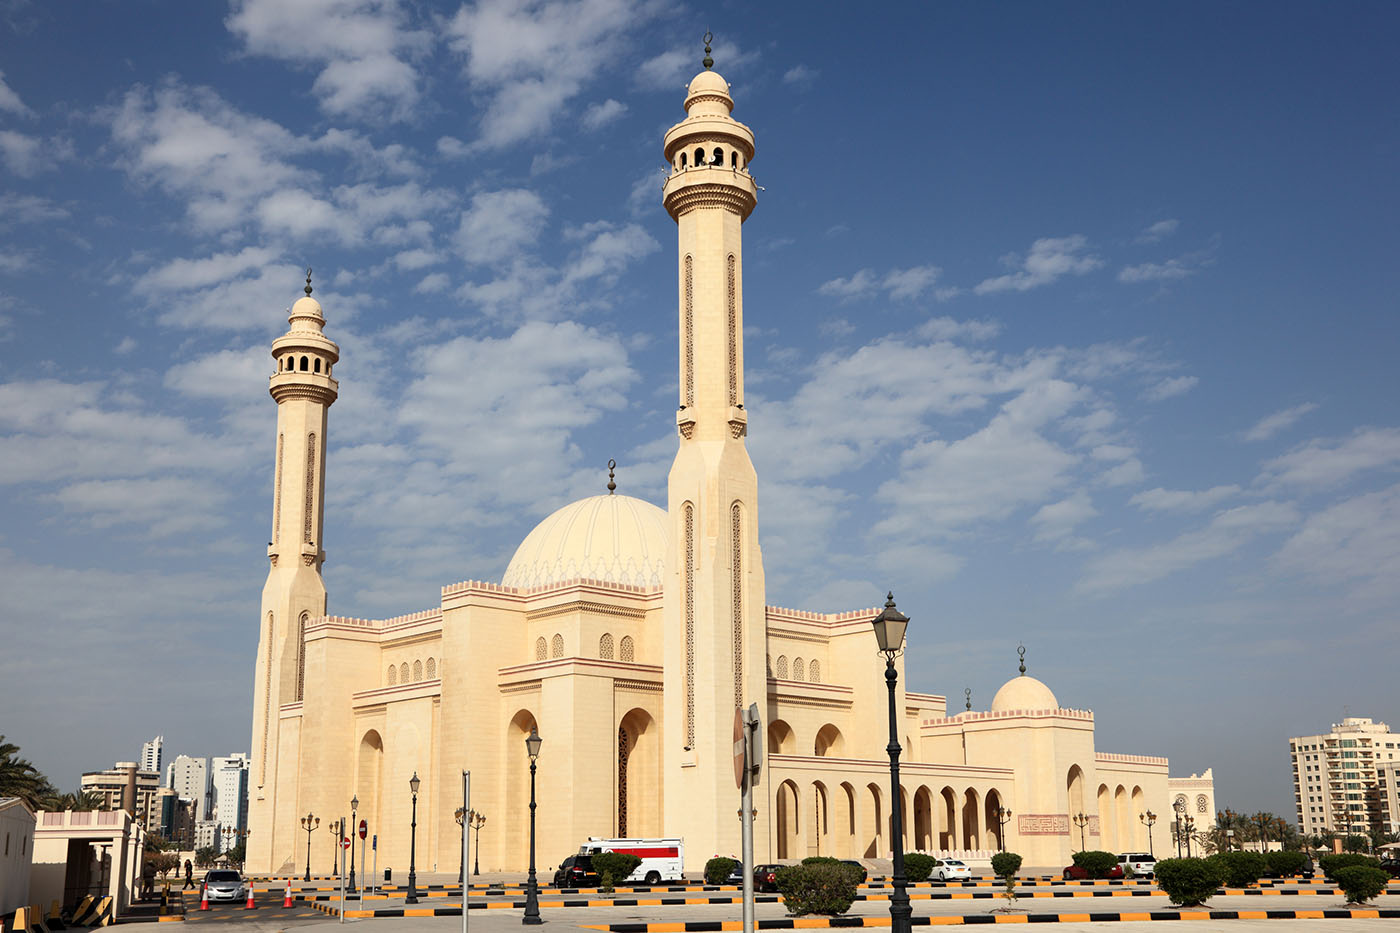 Al Fateh Grand Mosque, Points of Interest in Bahrain